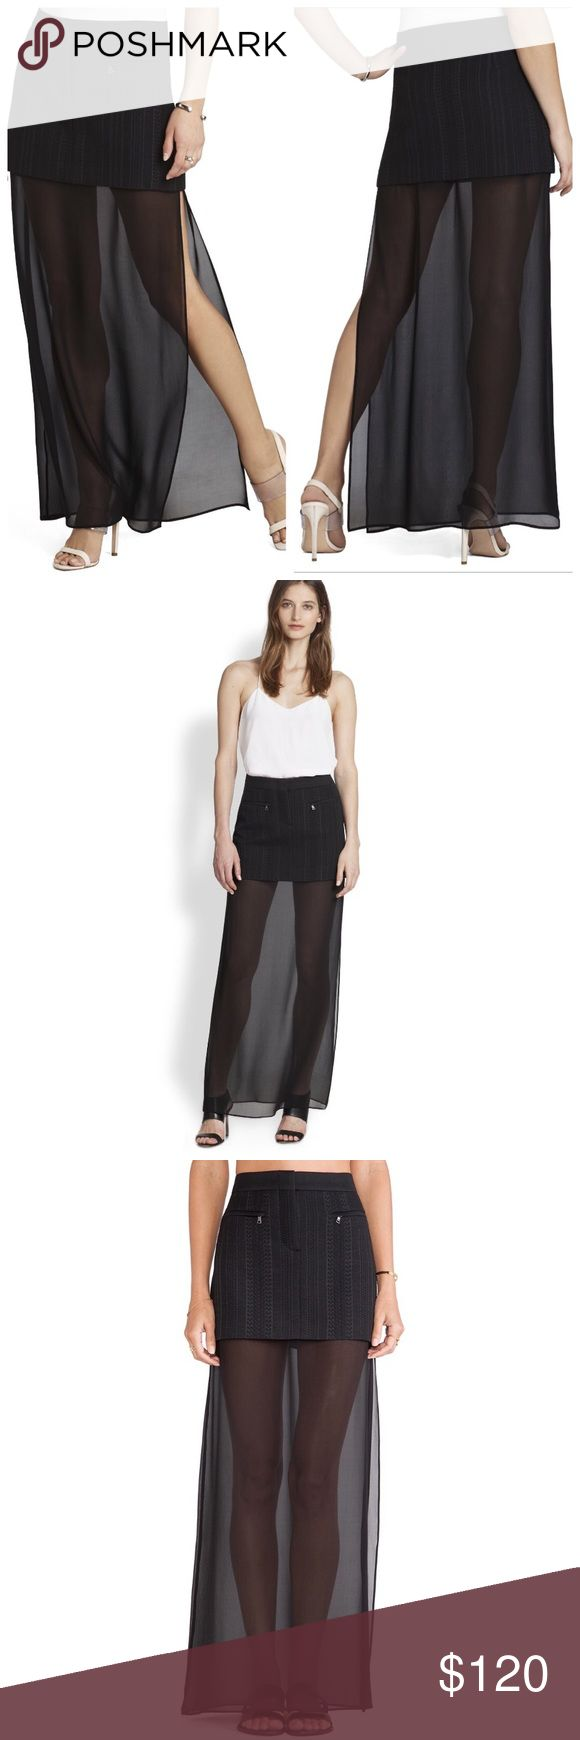 """BCBGMAXAZRIA """"KENDHAHL"""" skirt XS Super cute! BCBGMAXAZRIA skirt. Black. Perfect for the summer heat to come! Nwt. Never been used! Chiffon bottom part. Slit on the side. If you have any questions let me know!! 😍 BCBGMaxAzria Skirts Maxi"""